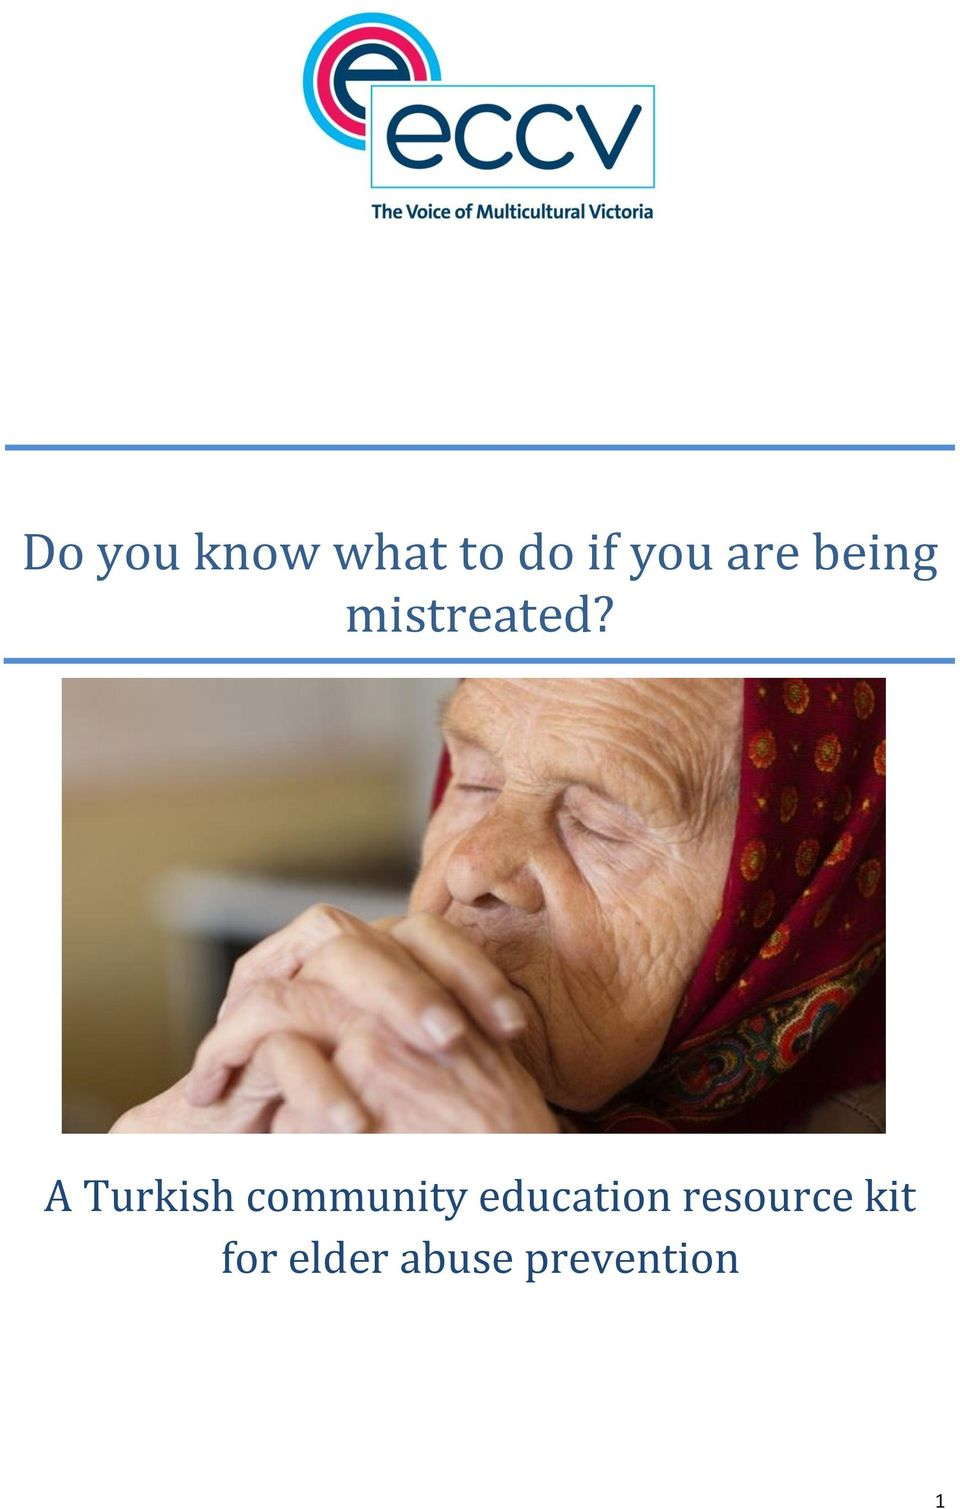 A Turkish community education